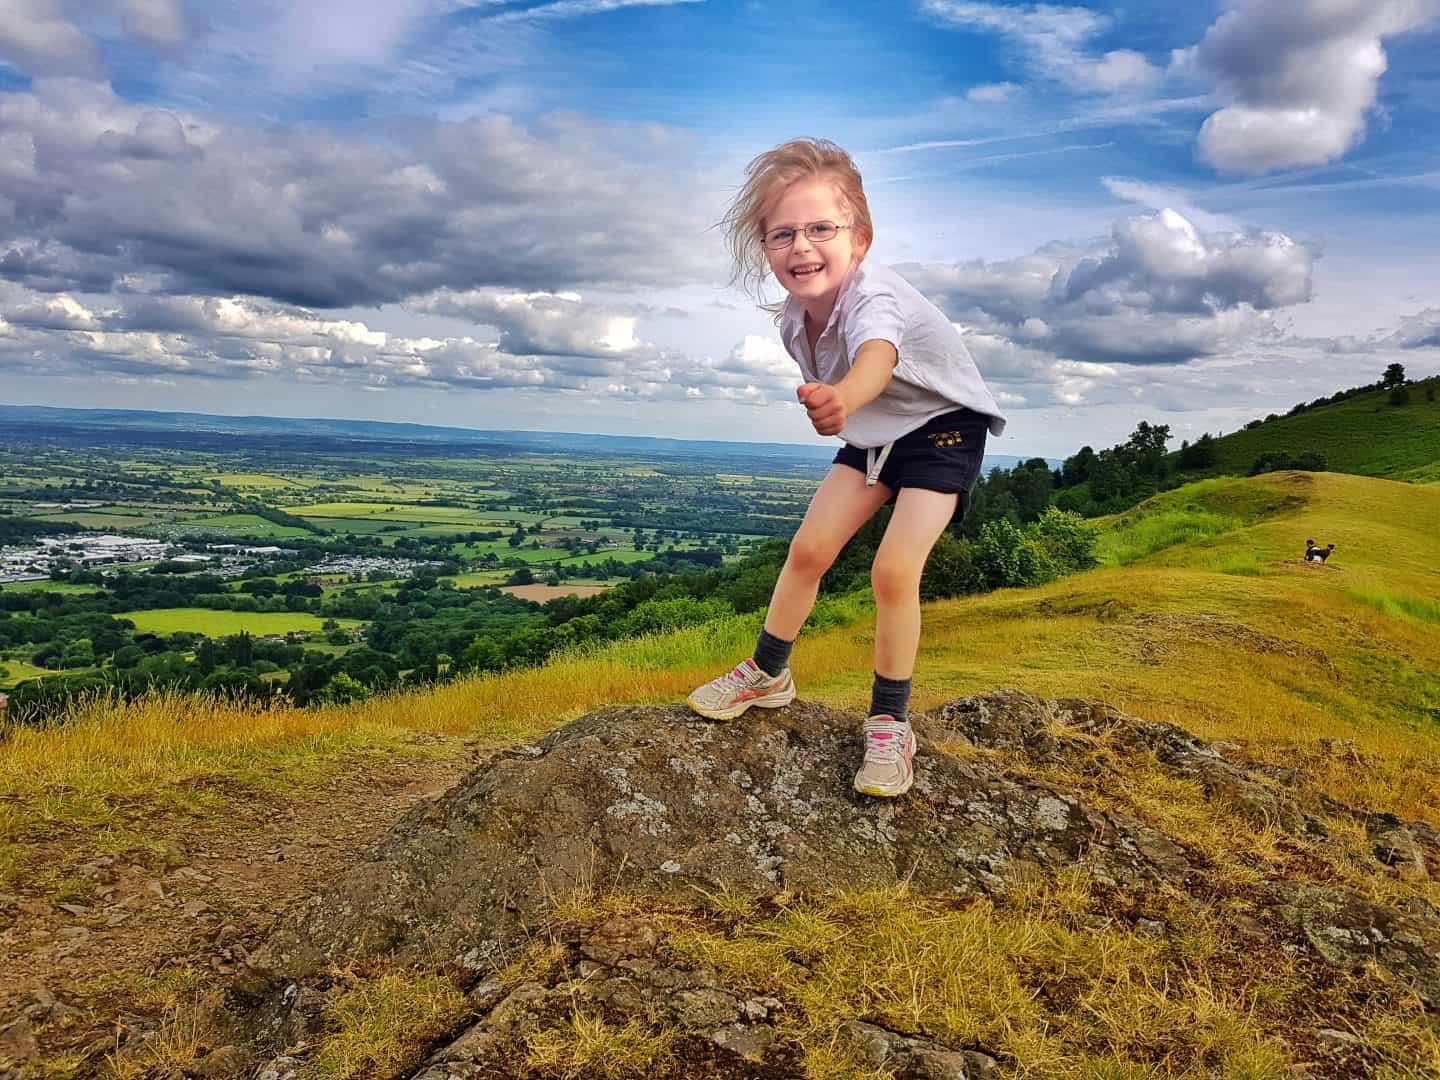 100 ideas to prevent boredom in the Summer holidays